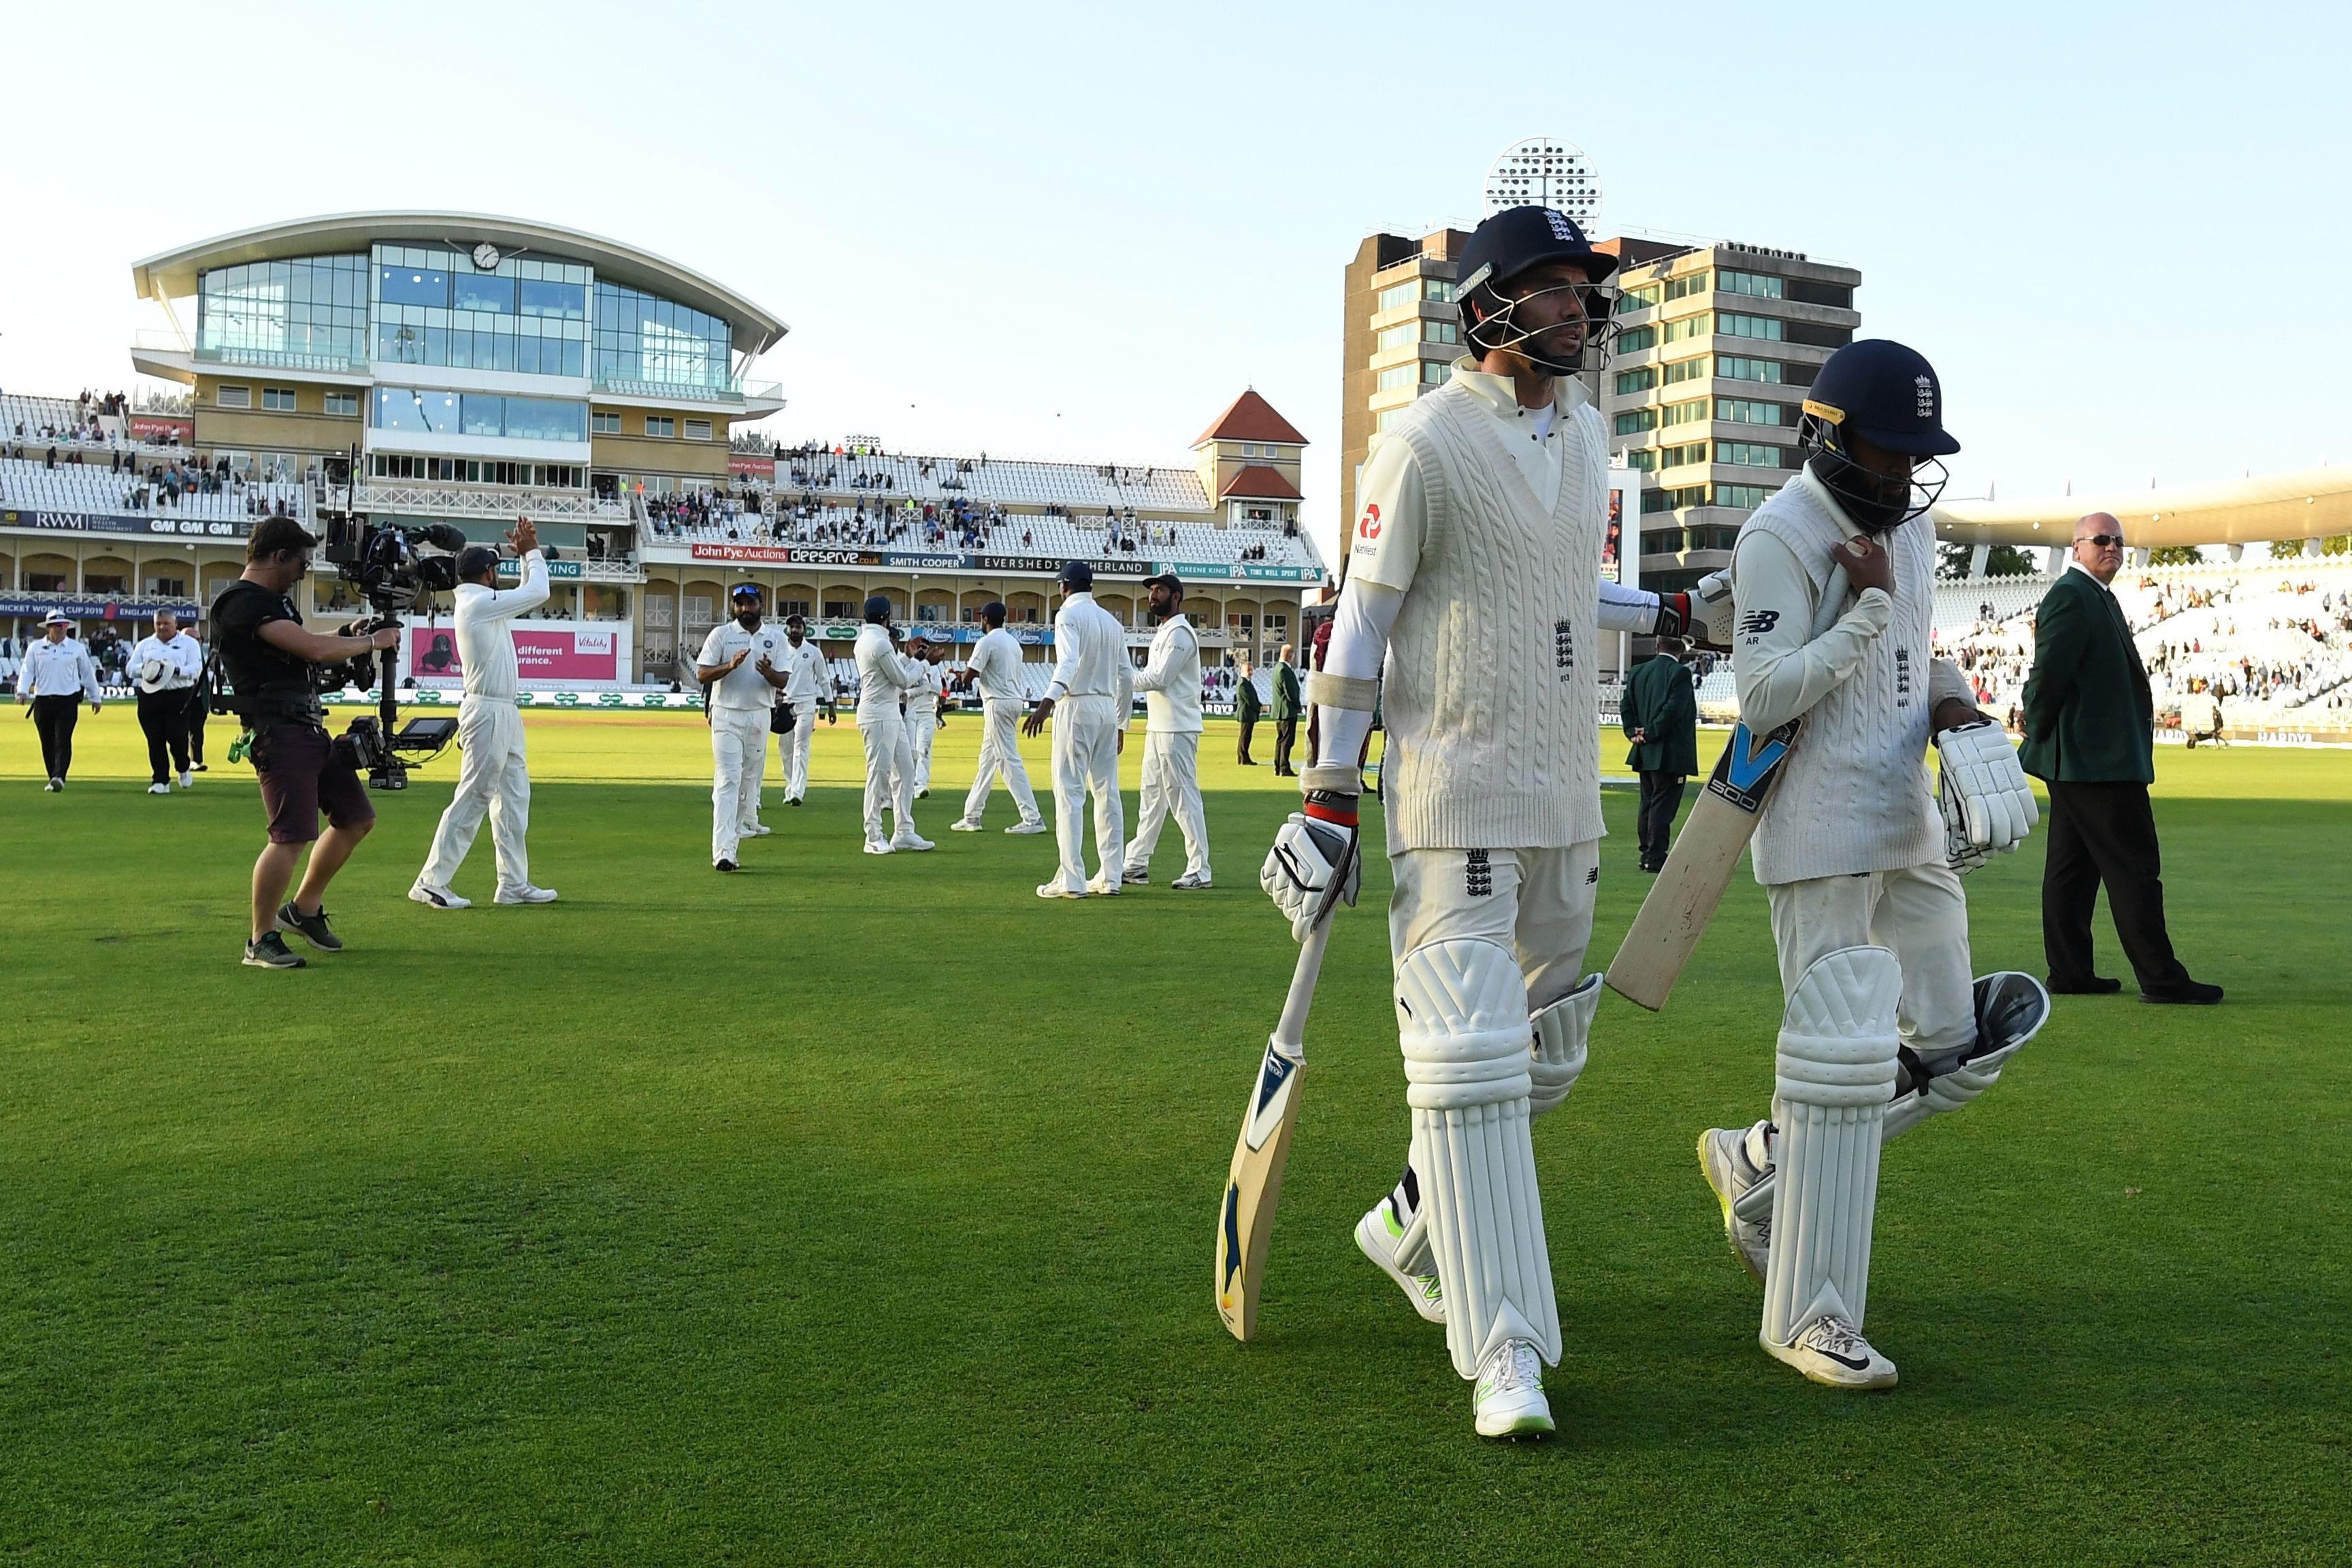 James Anderson and Adil Rashid forced a day five, but fans may not get a refund